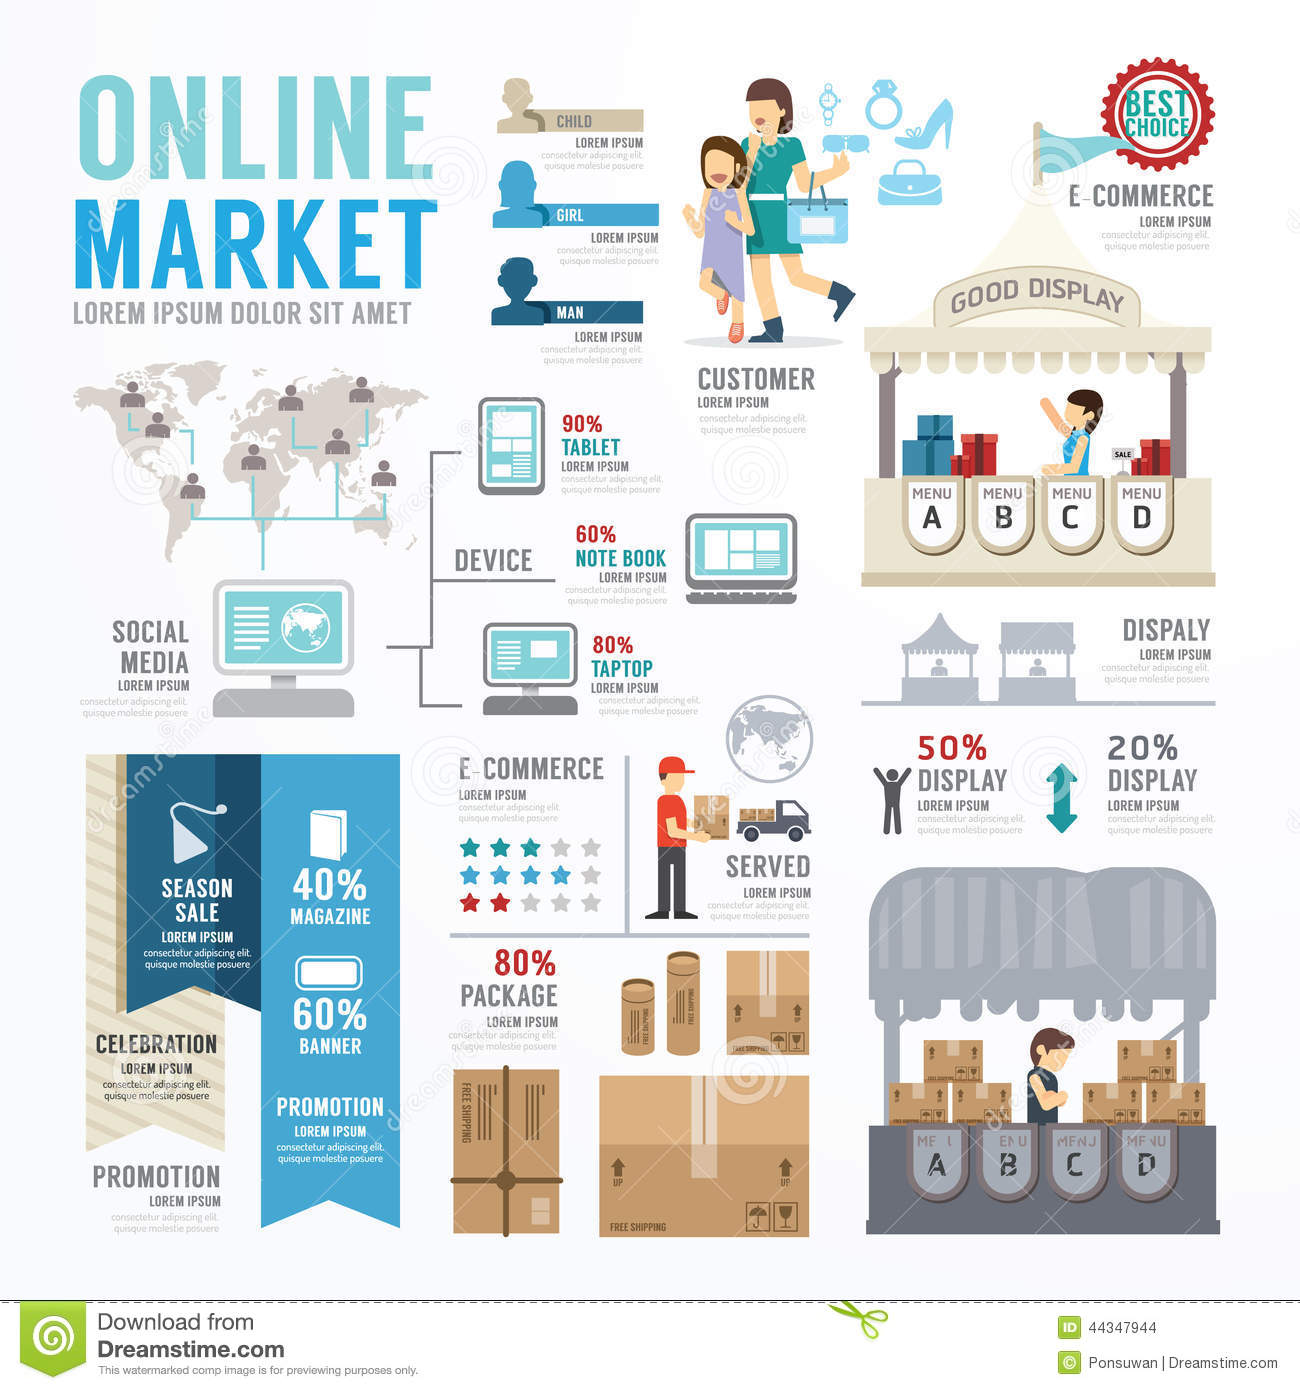 Business market online template design infographic Create a blueprint online